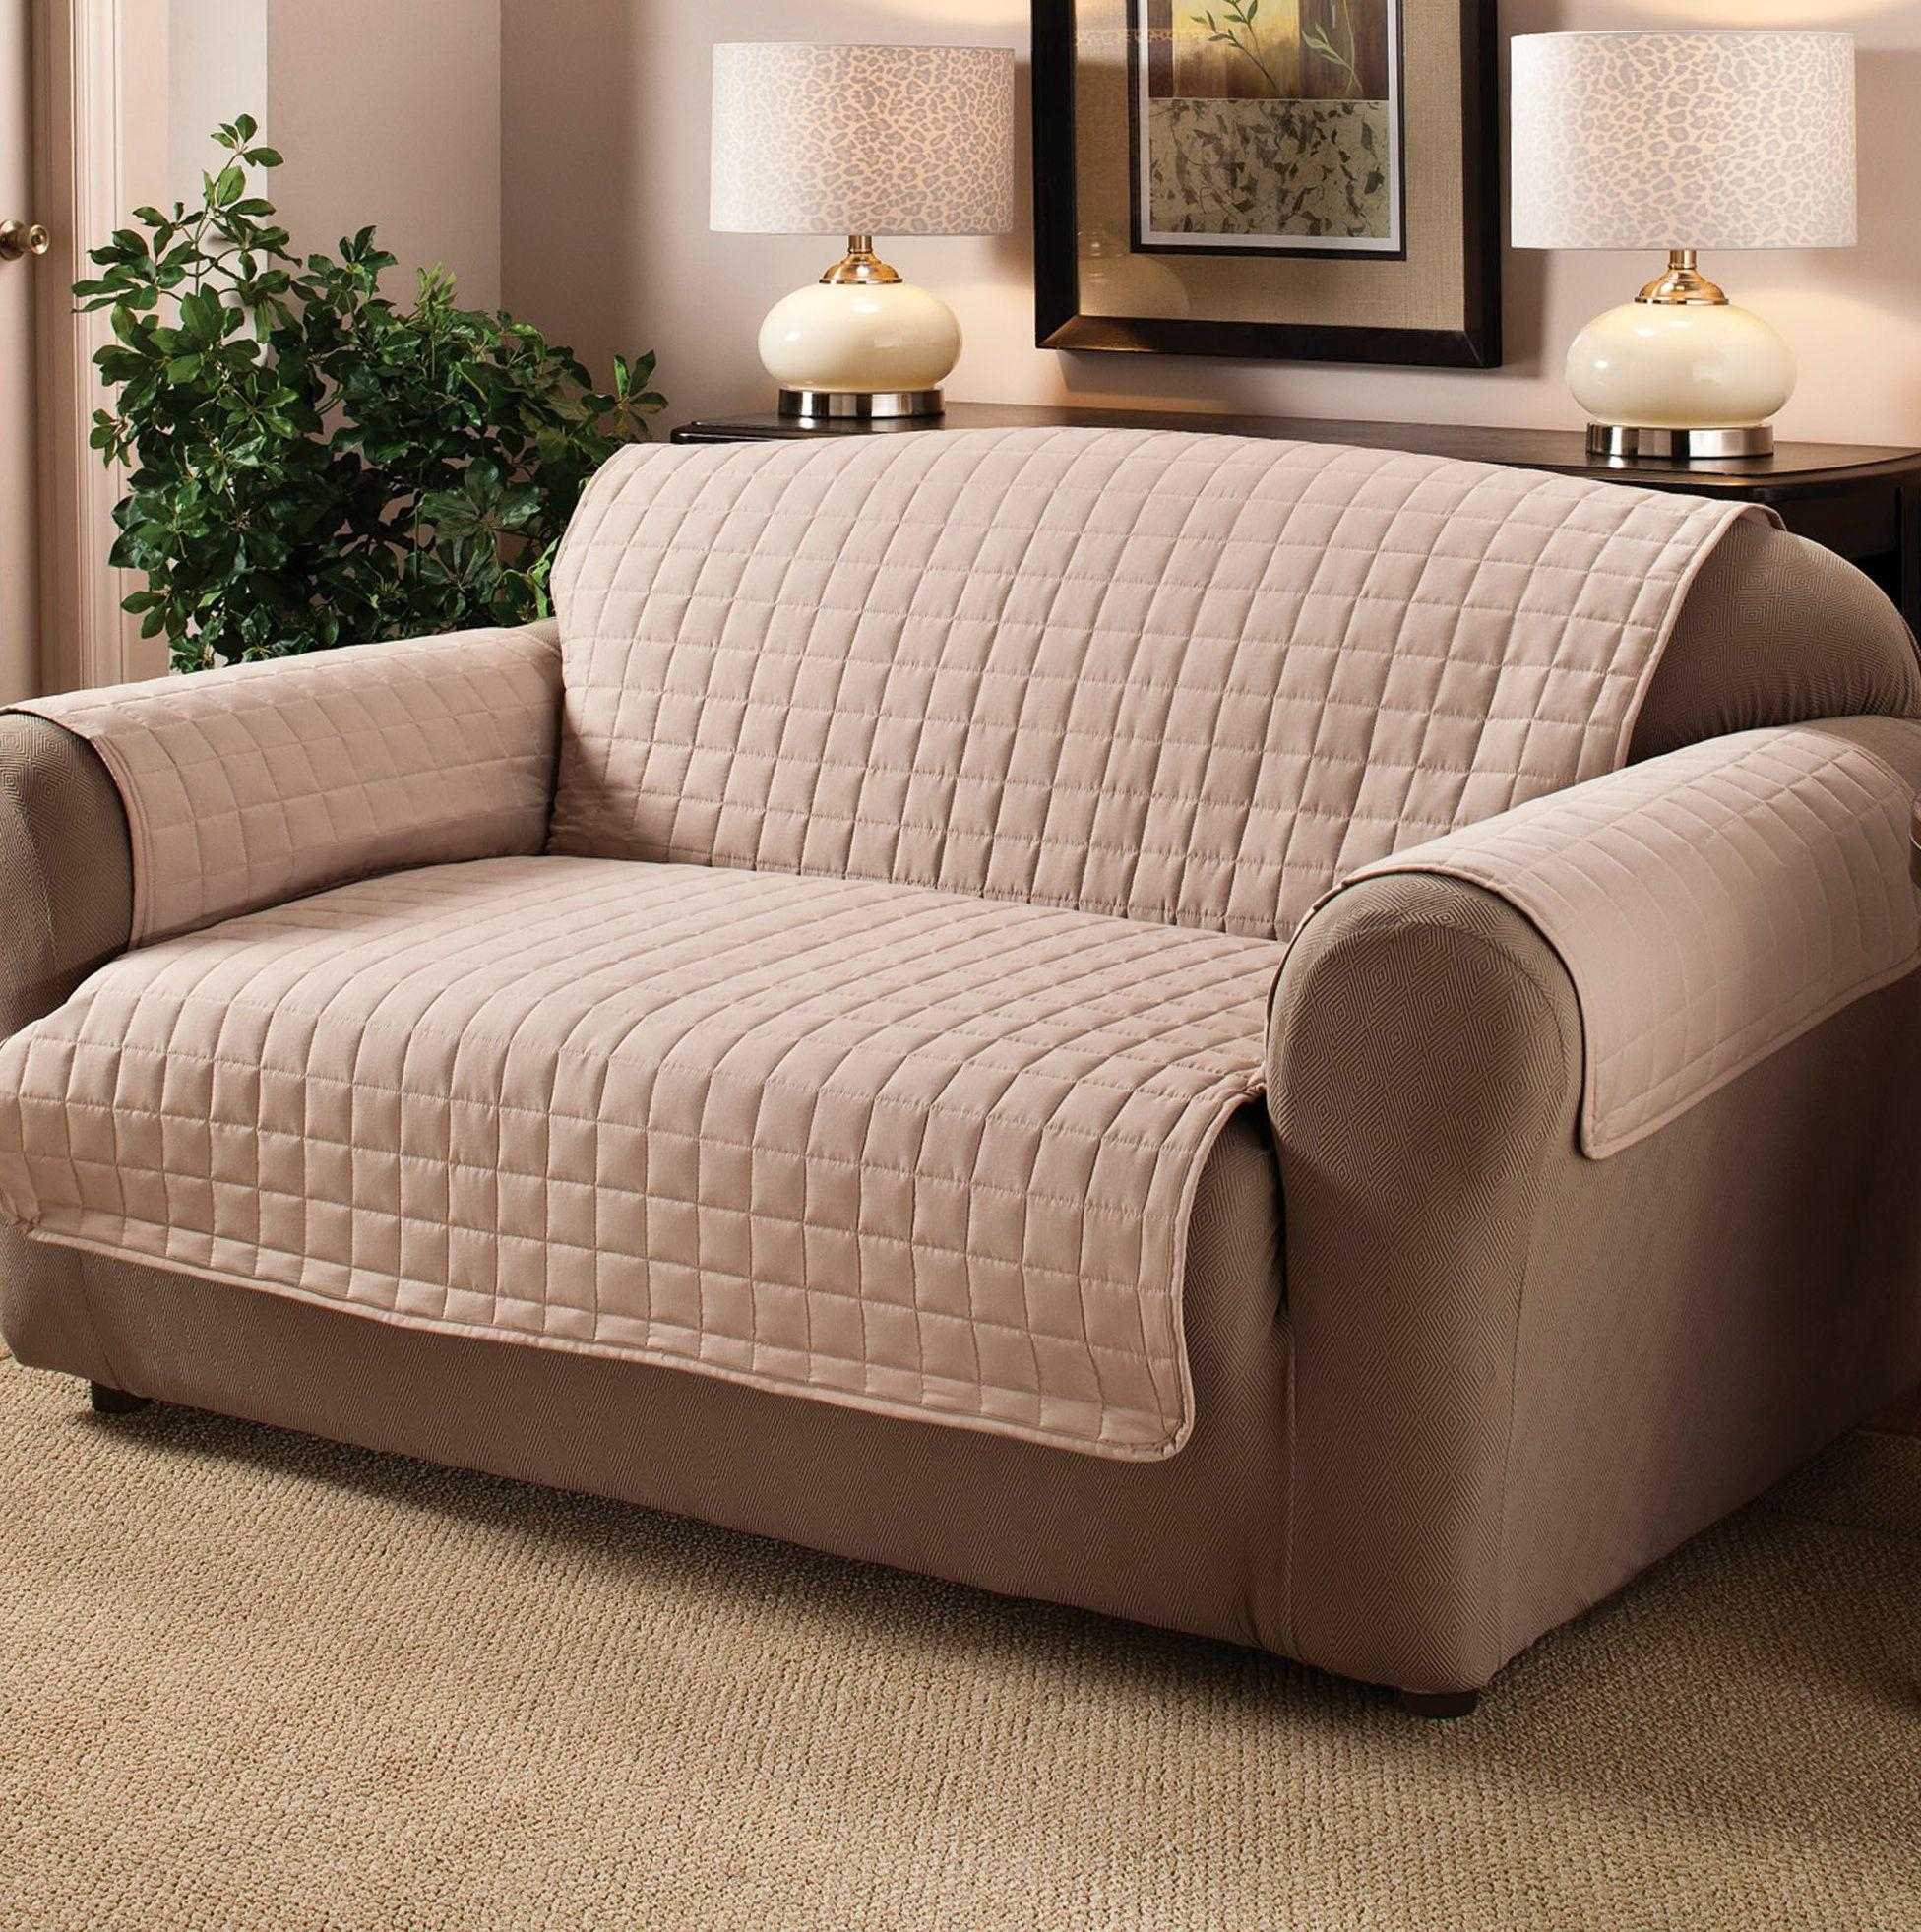 Furniture: Oversized Chair Slipcovers To Keep Your Furniture Clean For Walmart Slipcovers For Sofas (Image 7 of 20)